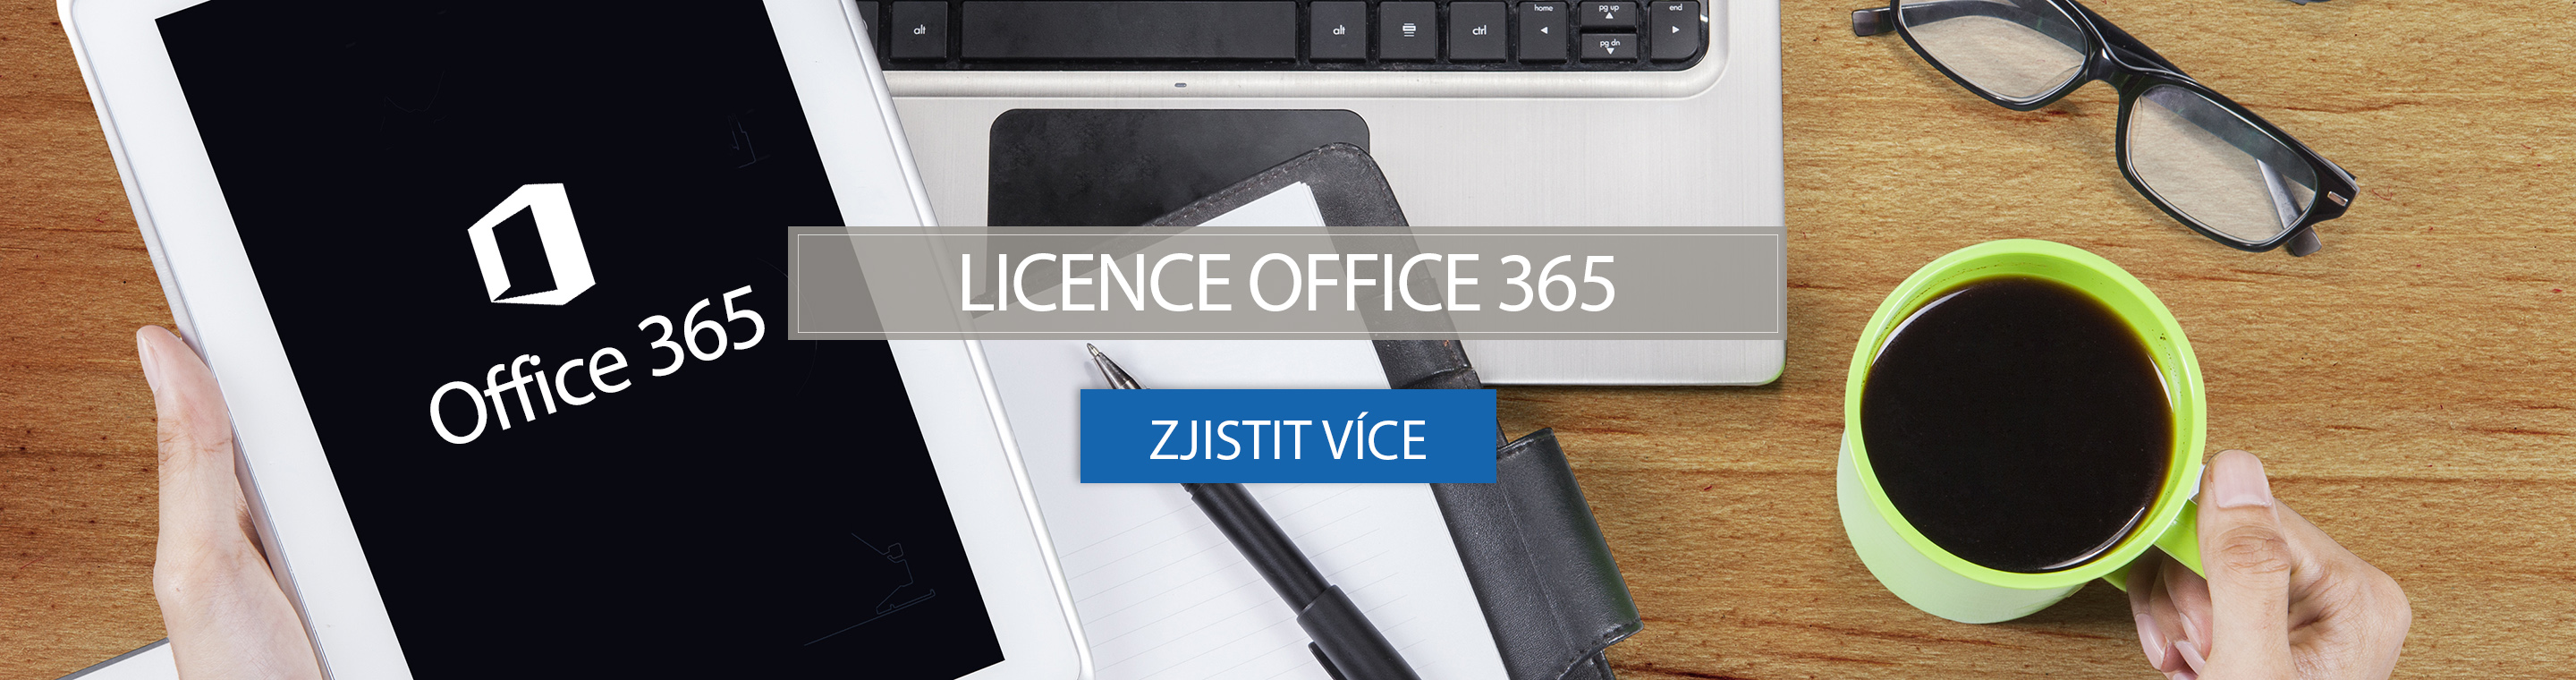 office 365 how to change licence